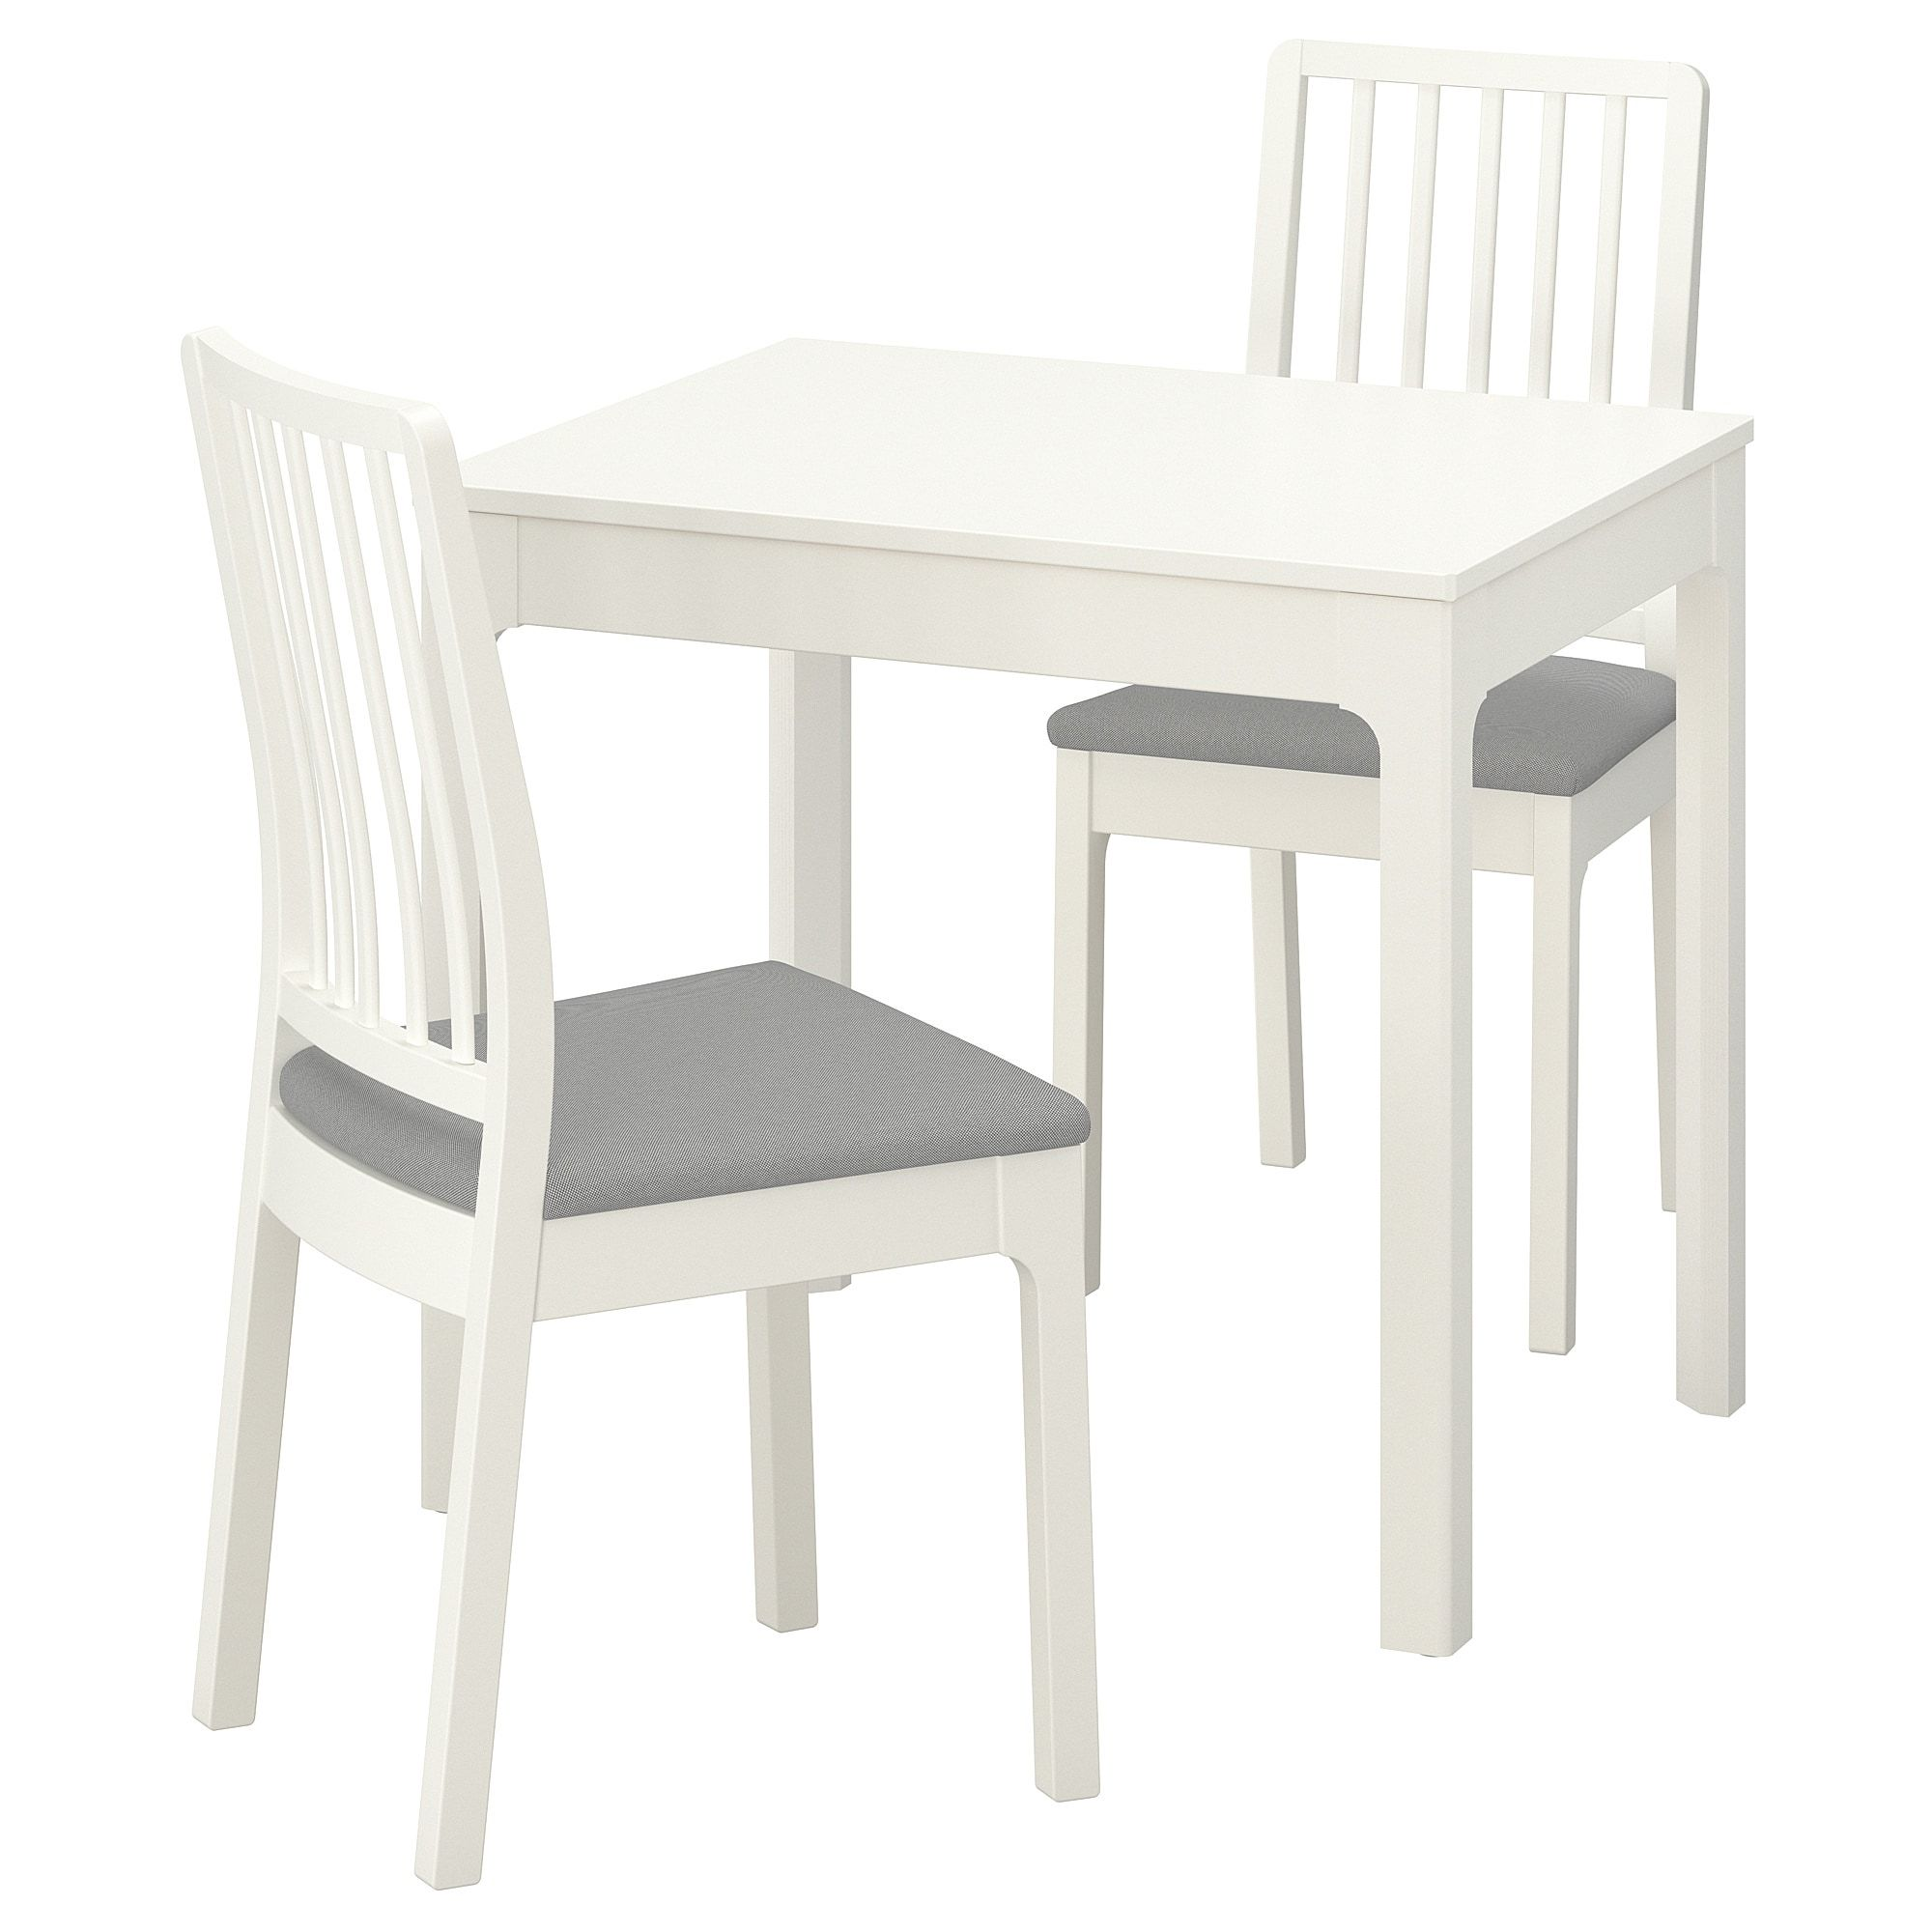 bc3599af470 IKEA - EKEDALEN   Table and 2 chairs white